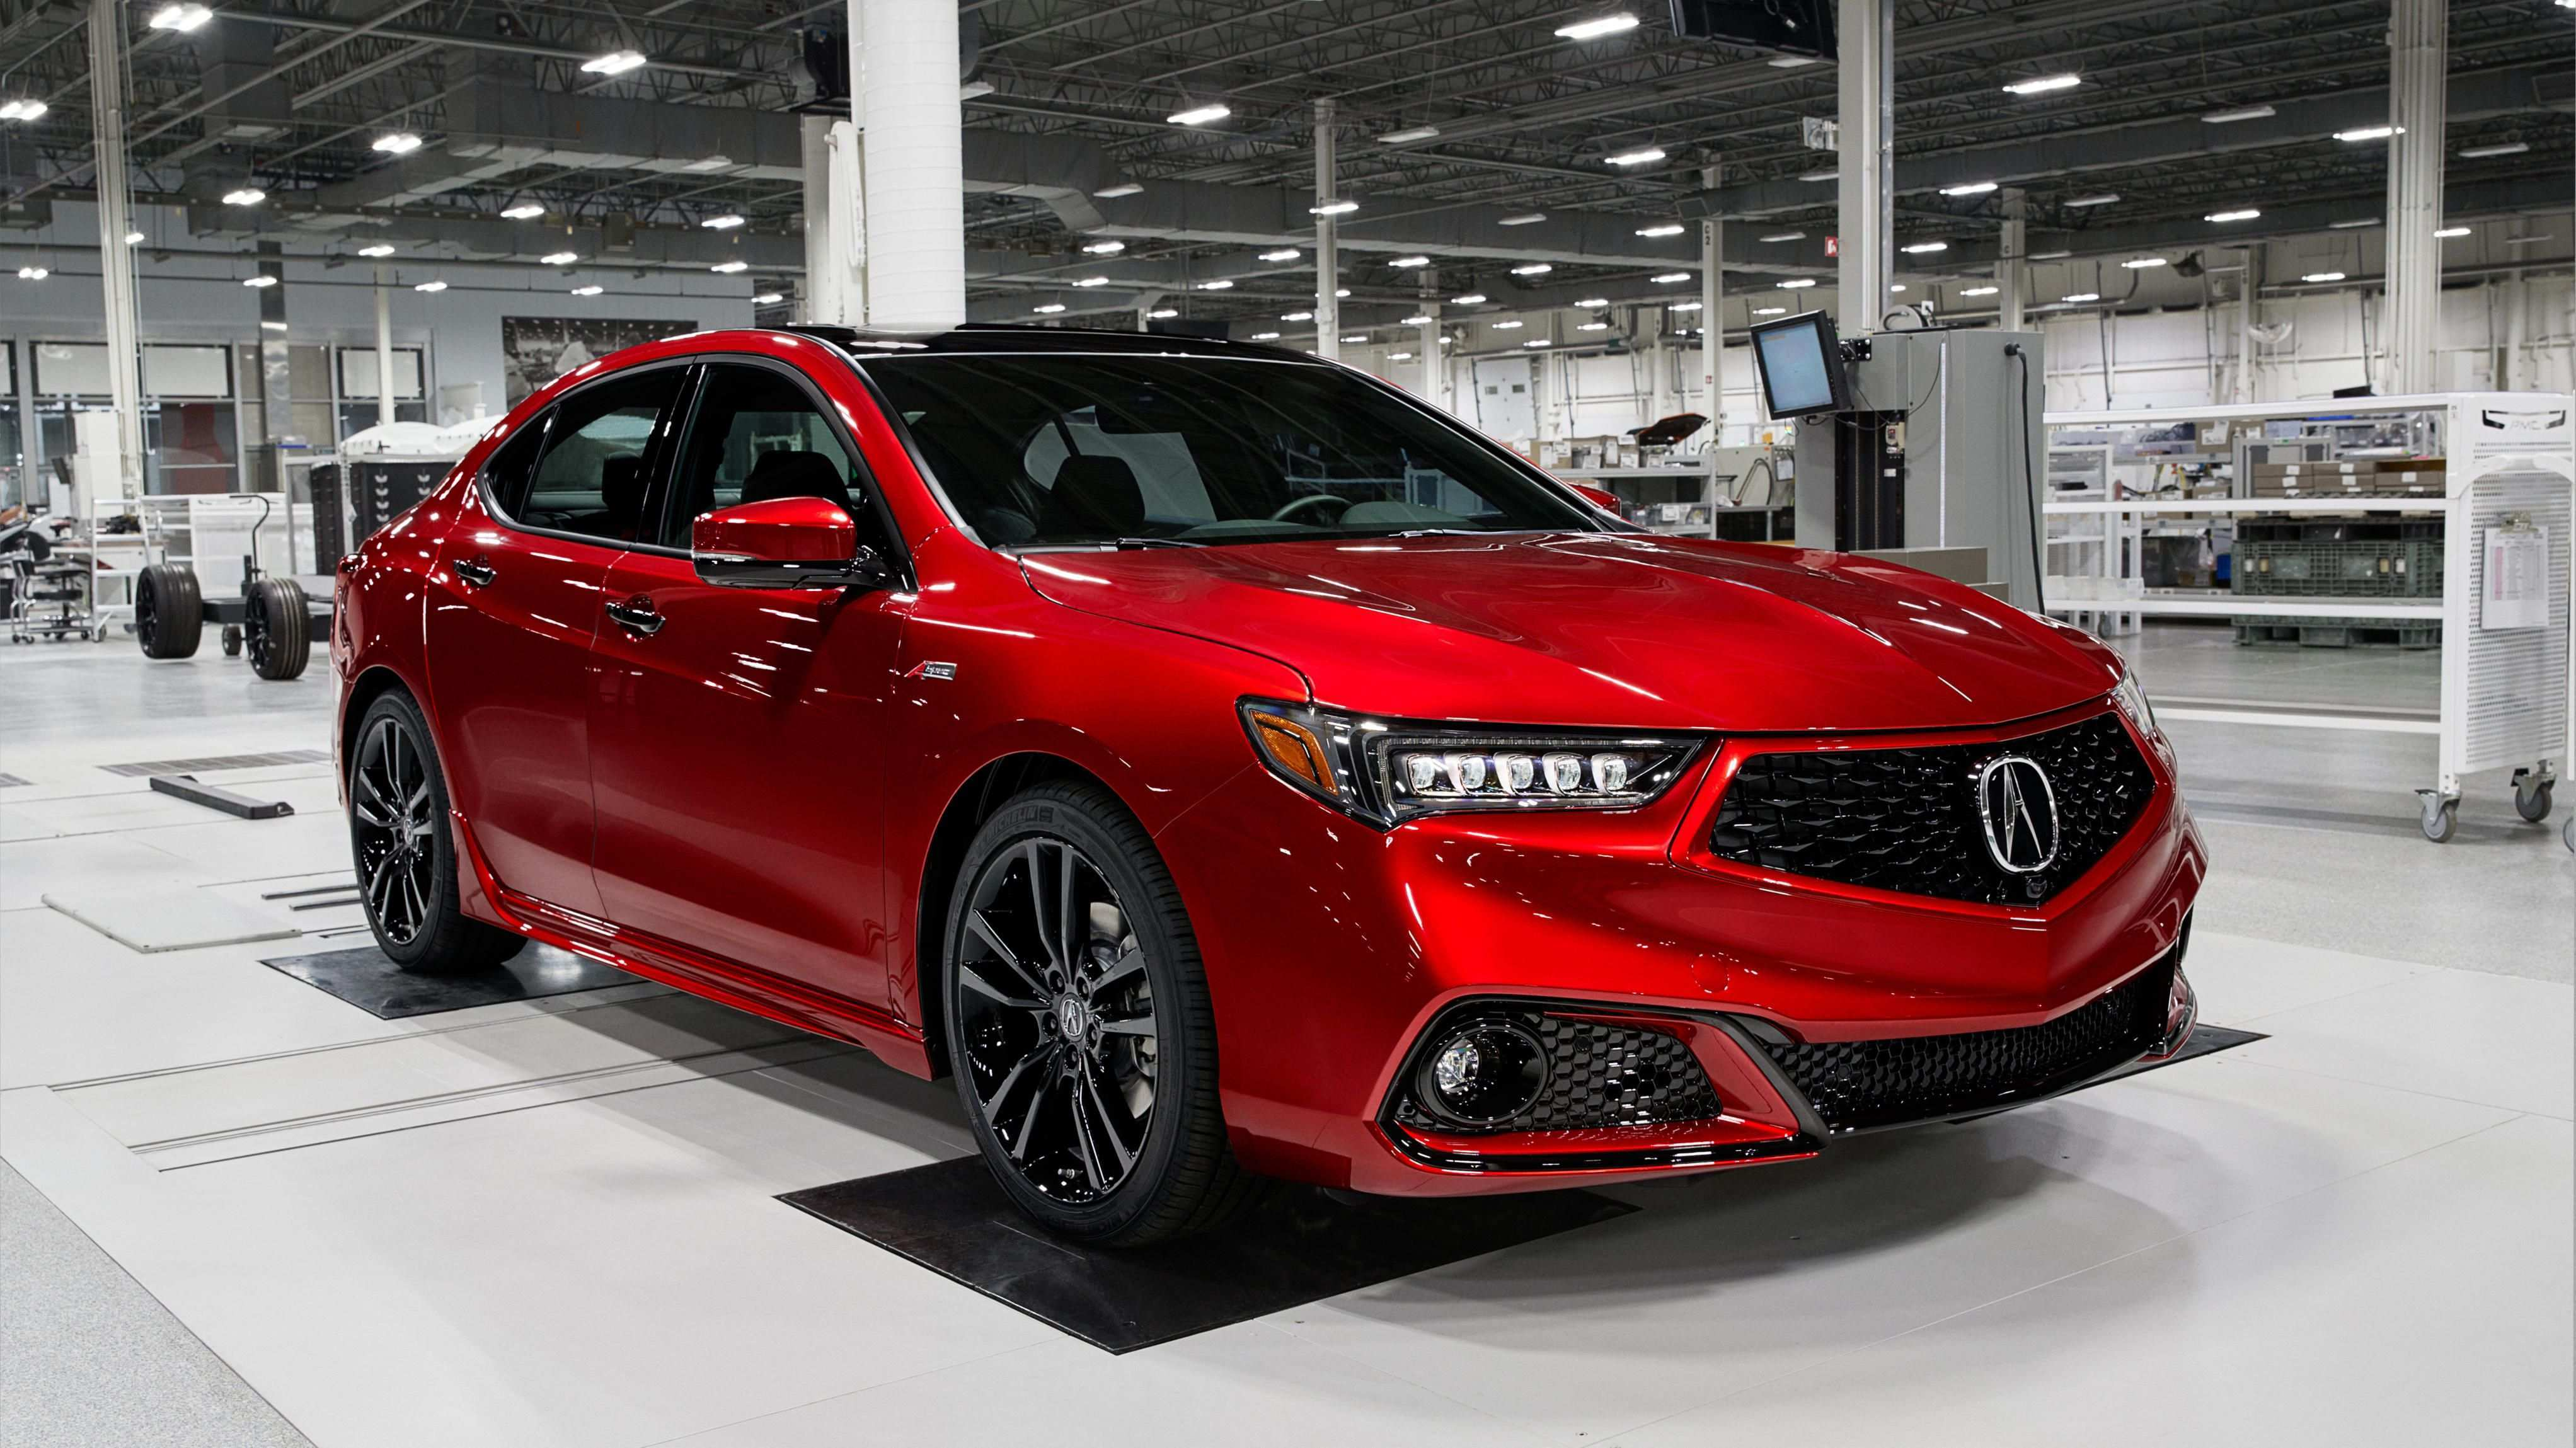 71 Gallery of Acura Tlx 2020 Model Review by Acura Tlx 2020 Model